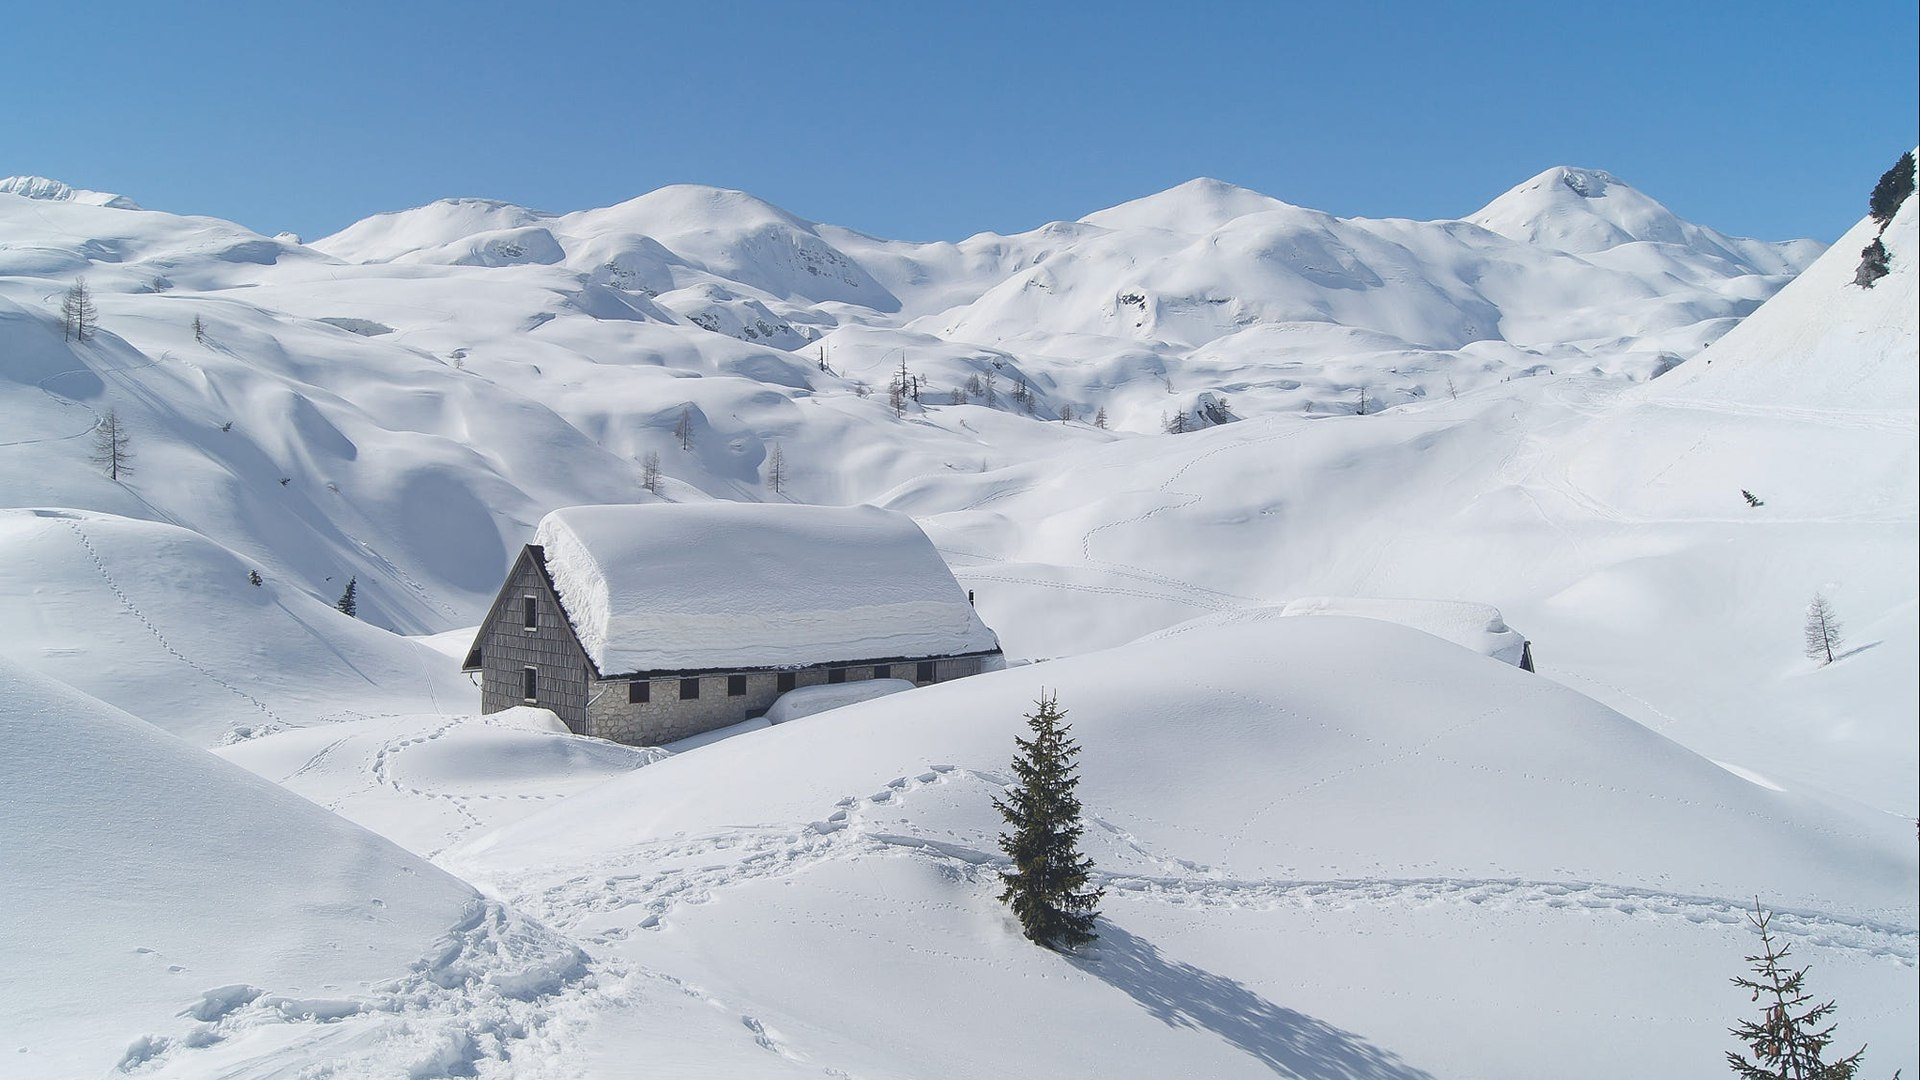 Snowy house in the mountains wallpaper